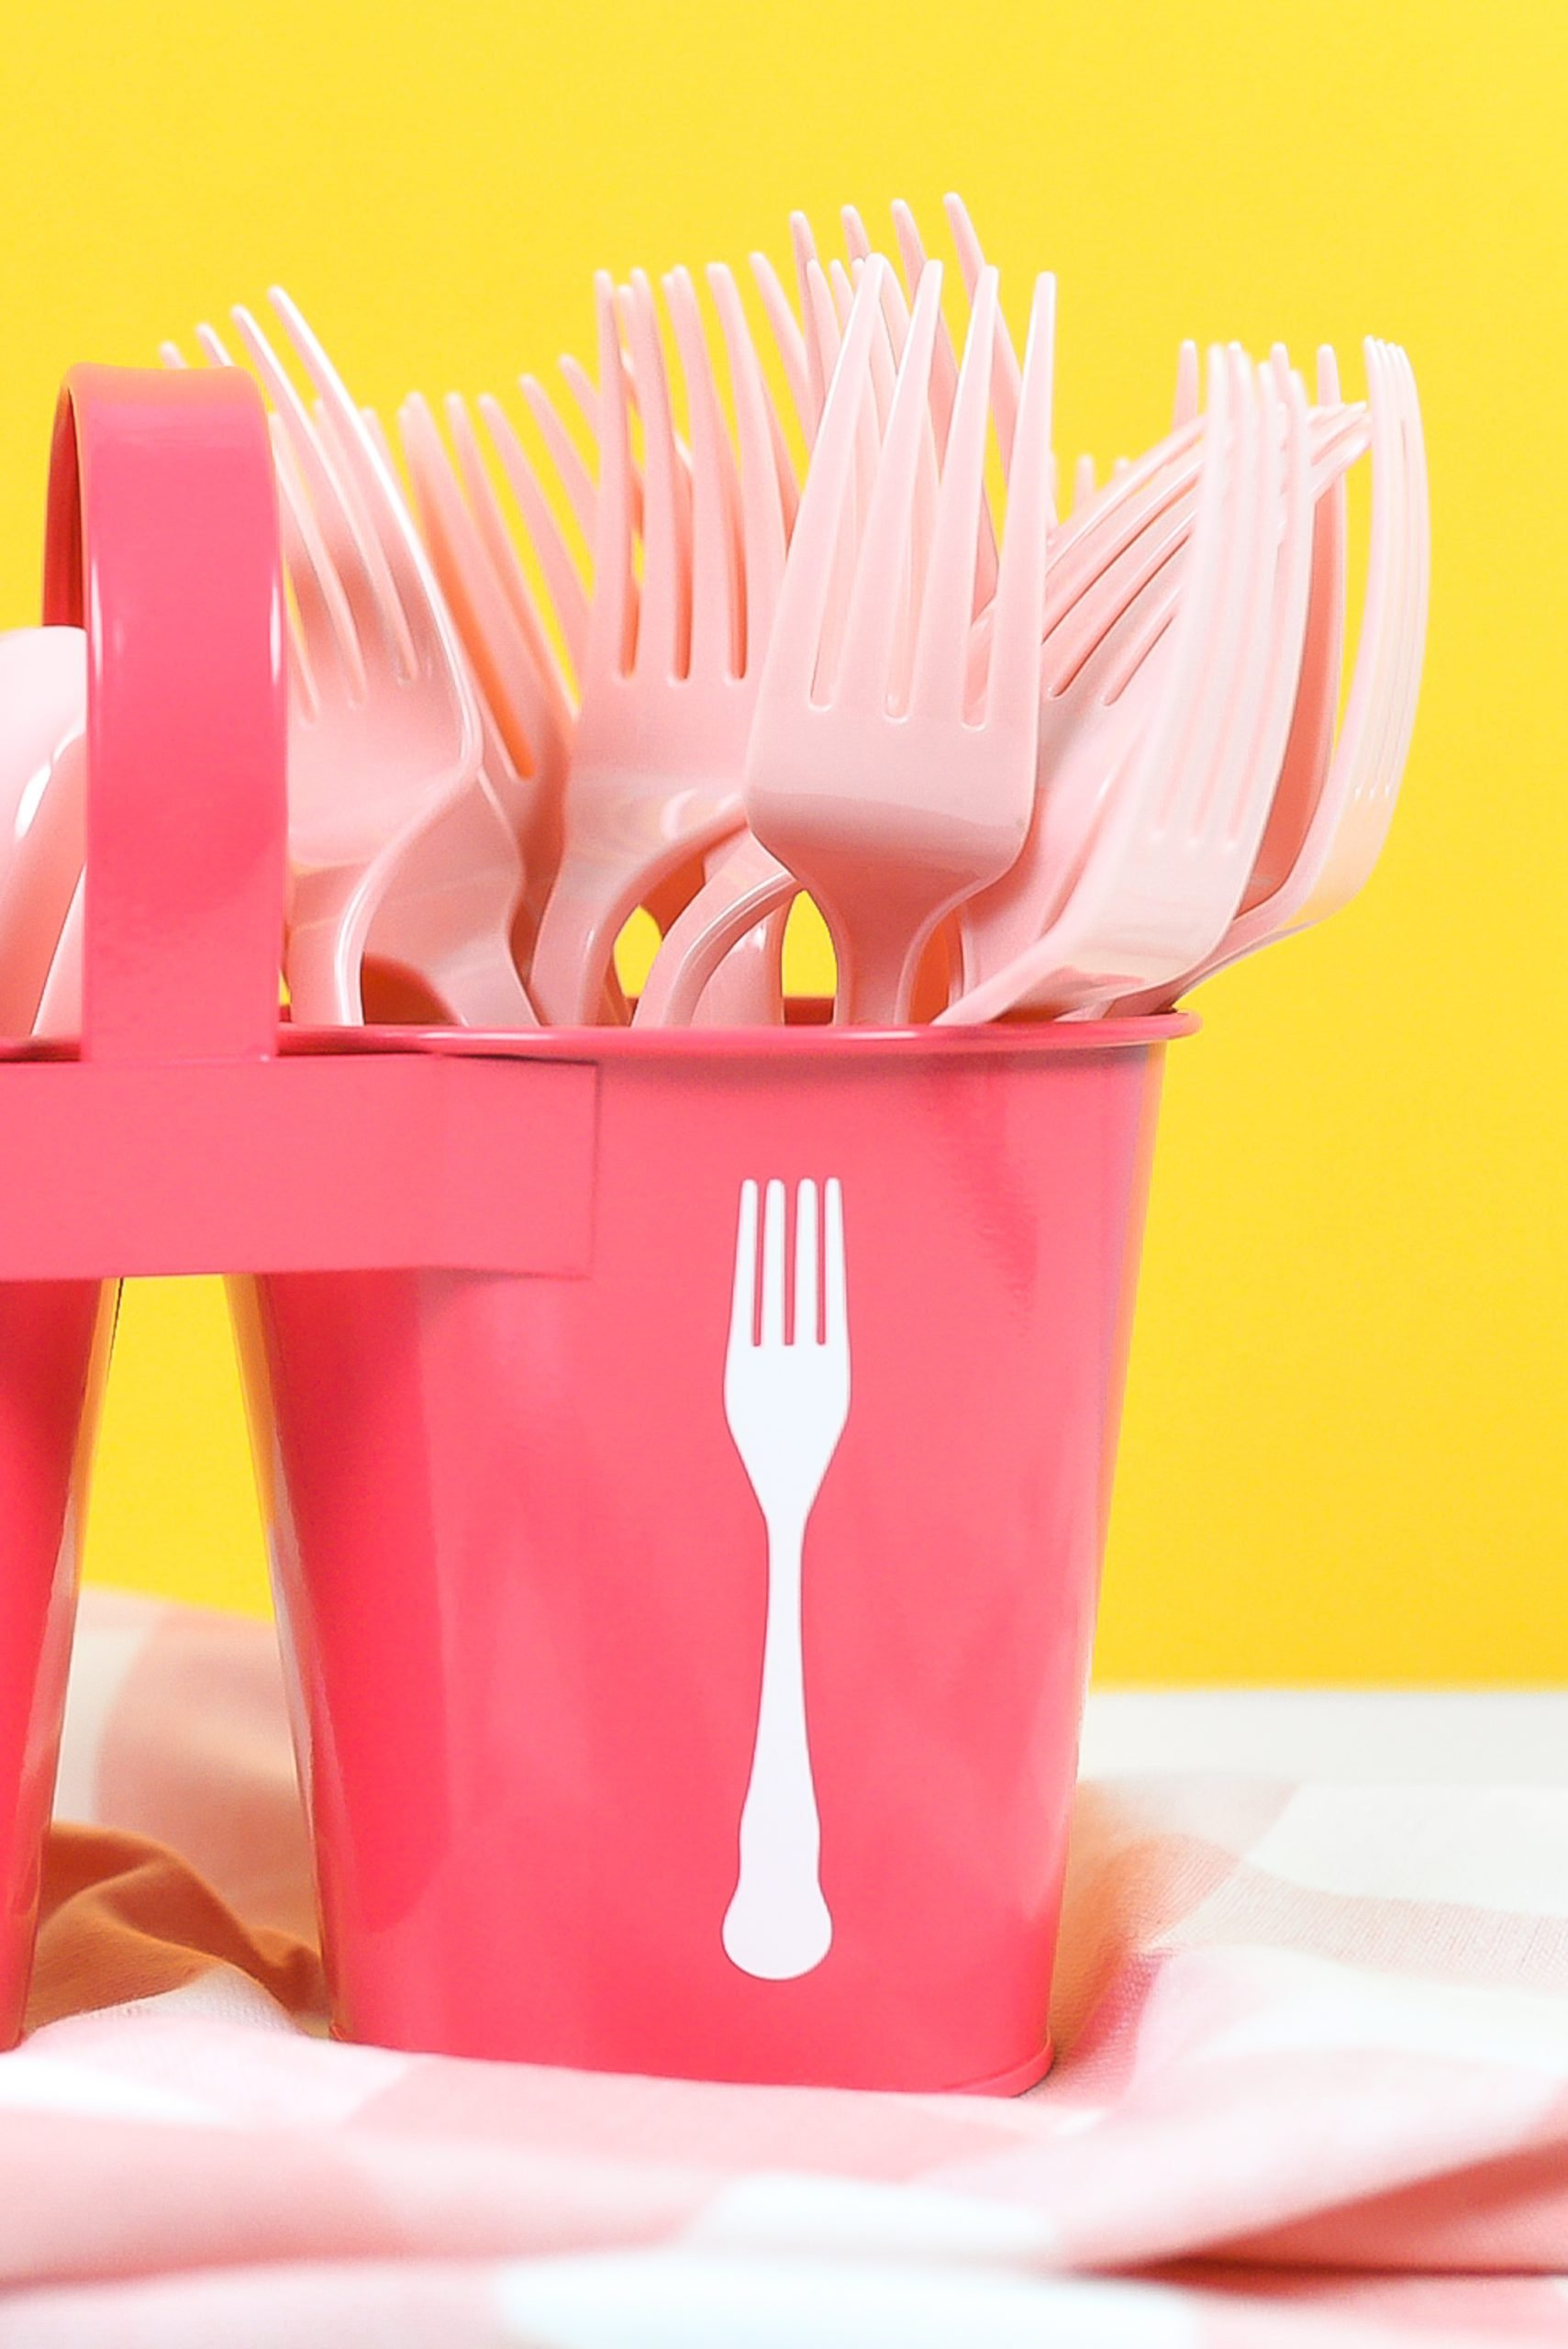 Zoomed in shot of pink utensil caddy with white spoon and for decals, filled with pink plastic forks and spoons on a yellow background.